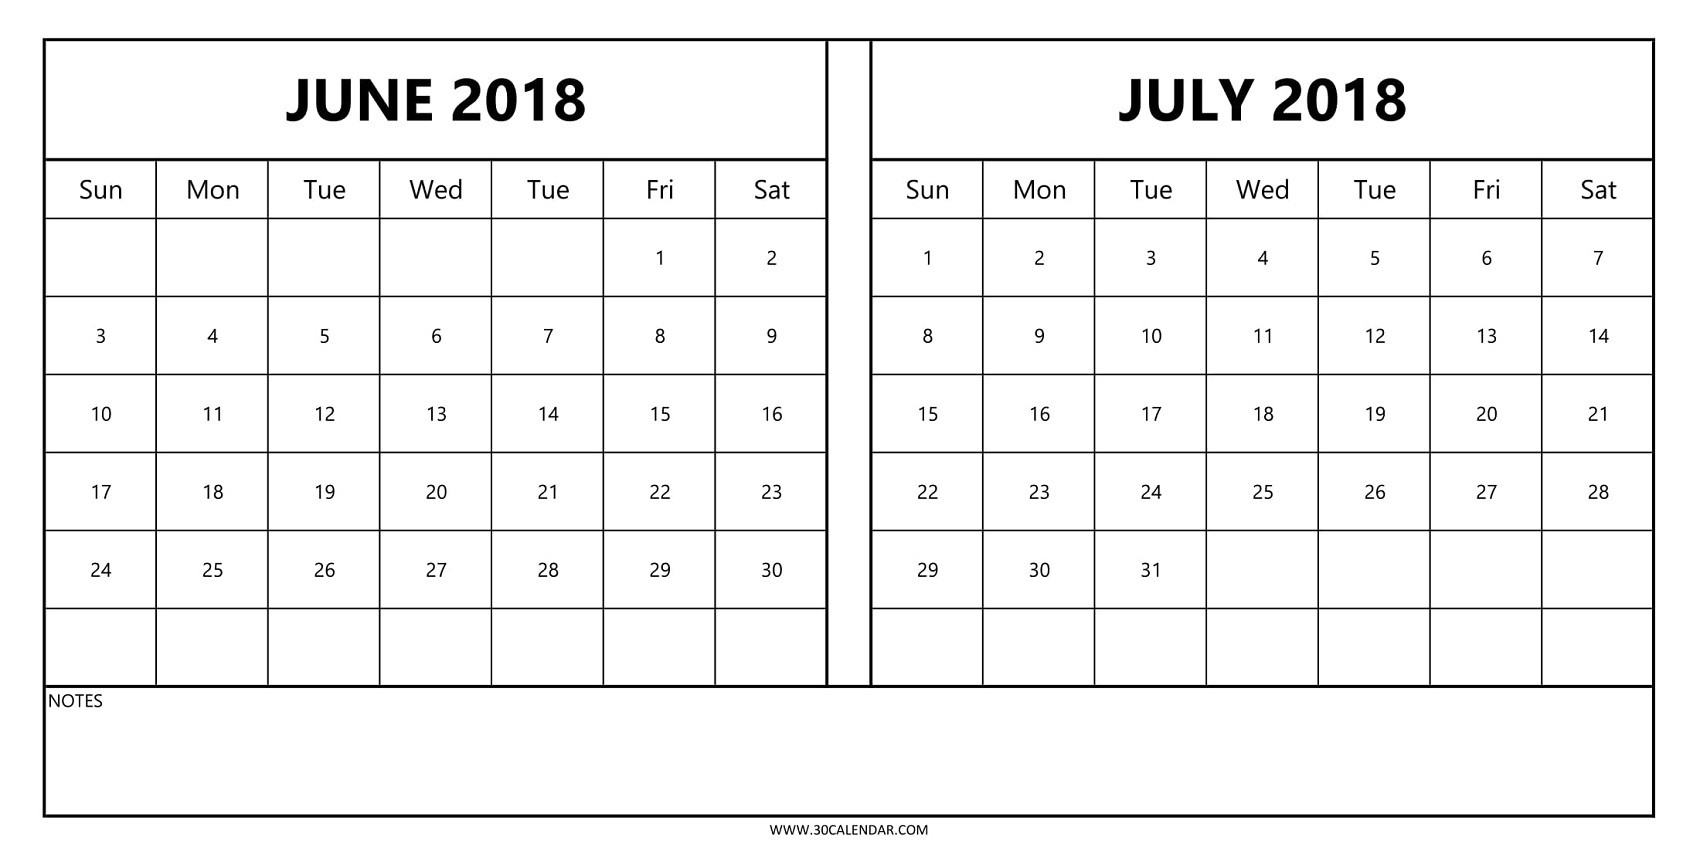 Free June and July 2018 Calendar